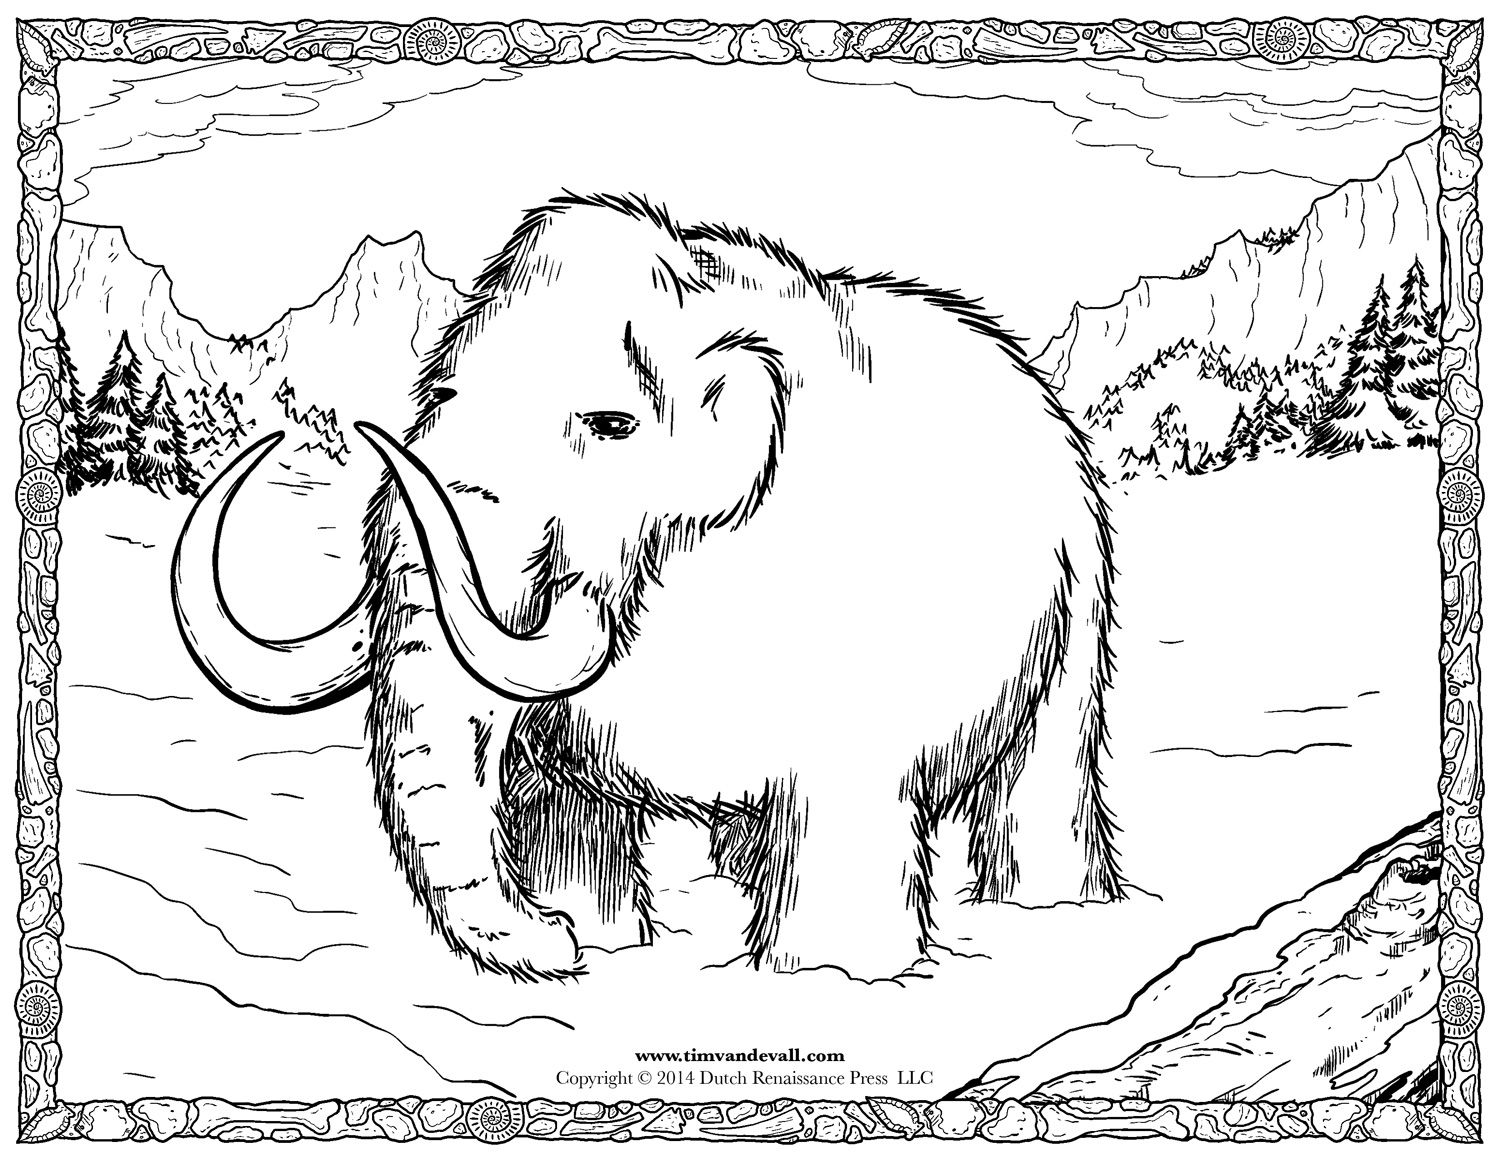 Woolly Mammoth Facts For Kids Social Studies Printables Paginas Para Colorear La Prehistoria Para Ninos Dibujos